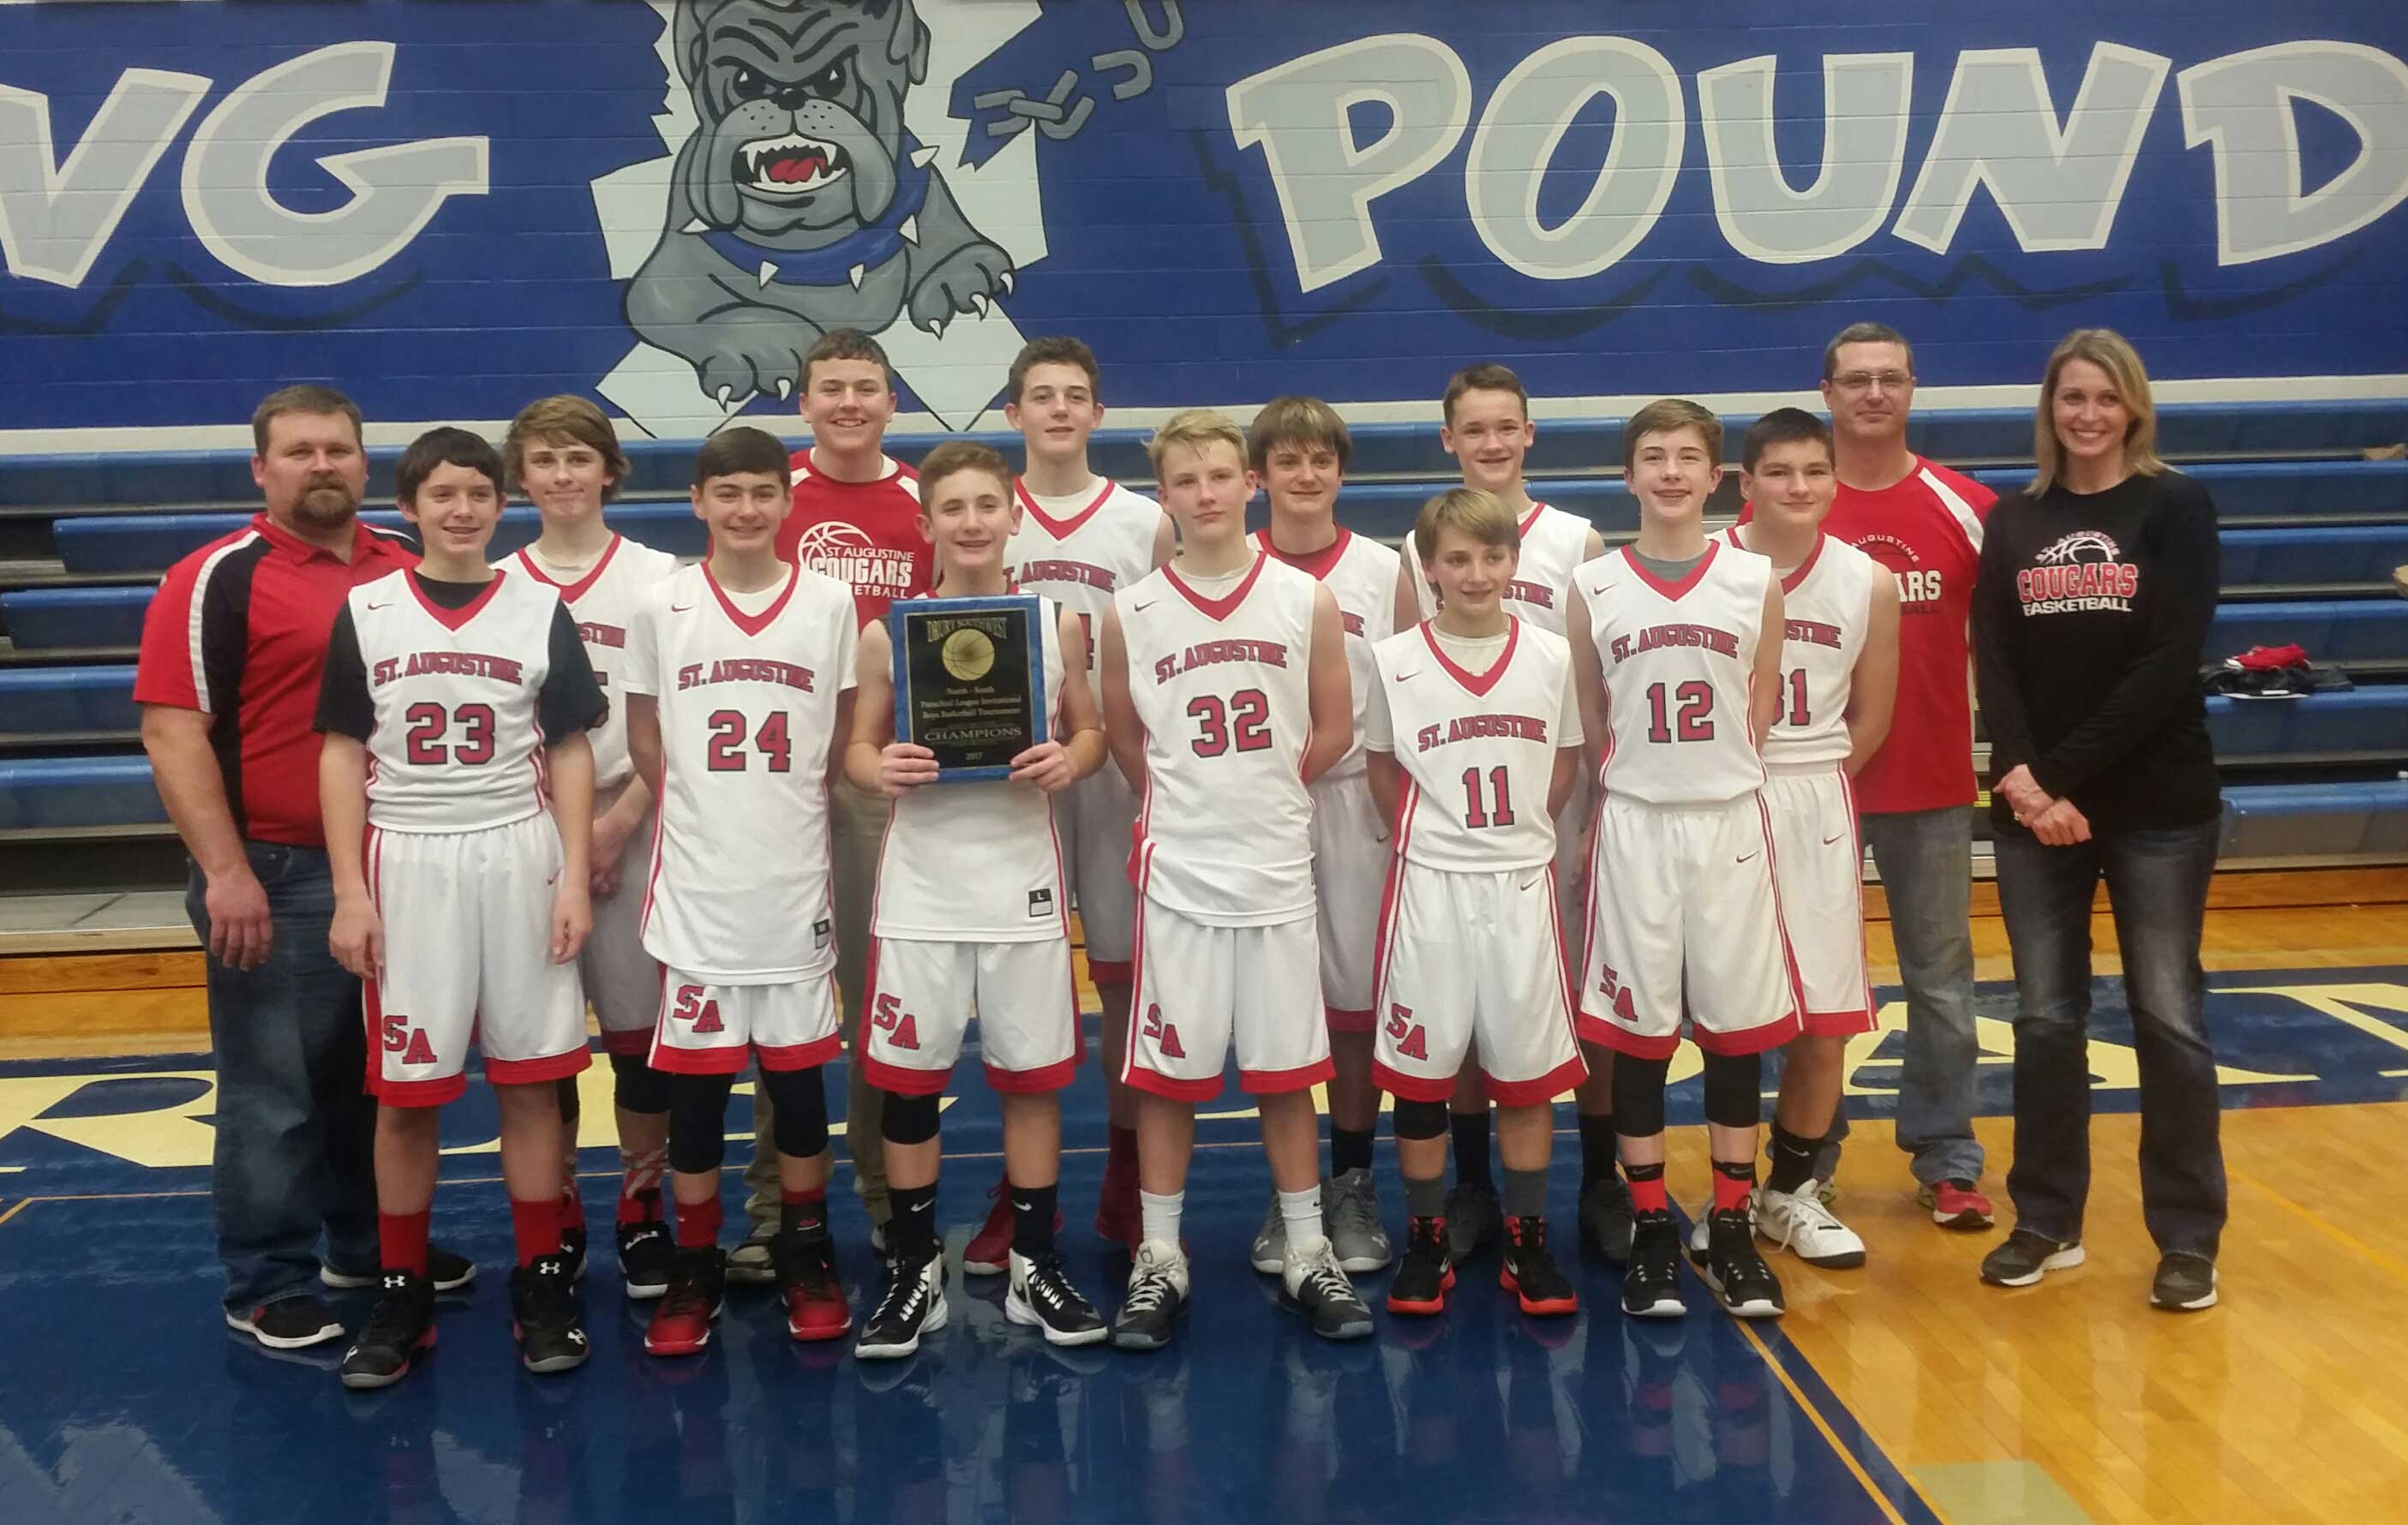 BLUE RIBBON TEAM—St. Augustine School Cougars from Kelso, MO, earned the First Place Championship in the 2017 Notre Dame Junior High Invitational Tournament held Jan. 7-8 and Jan. 14-15. Pictured were (front row) Drake Schlosser, Evan Boyd, Caleb Burger, Drew Dirnberger, Dawson Menz, and Brock Hulshof; (back row) Coach Allen Collier, Ty Collier, Cayden Beussink, Caleb LeGrand, Stetson Harris, Owen Beussink, Sam Brucker, Coach Brian LeGrand, and Coach Jill LeGrand.(Submitted photo)